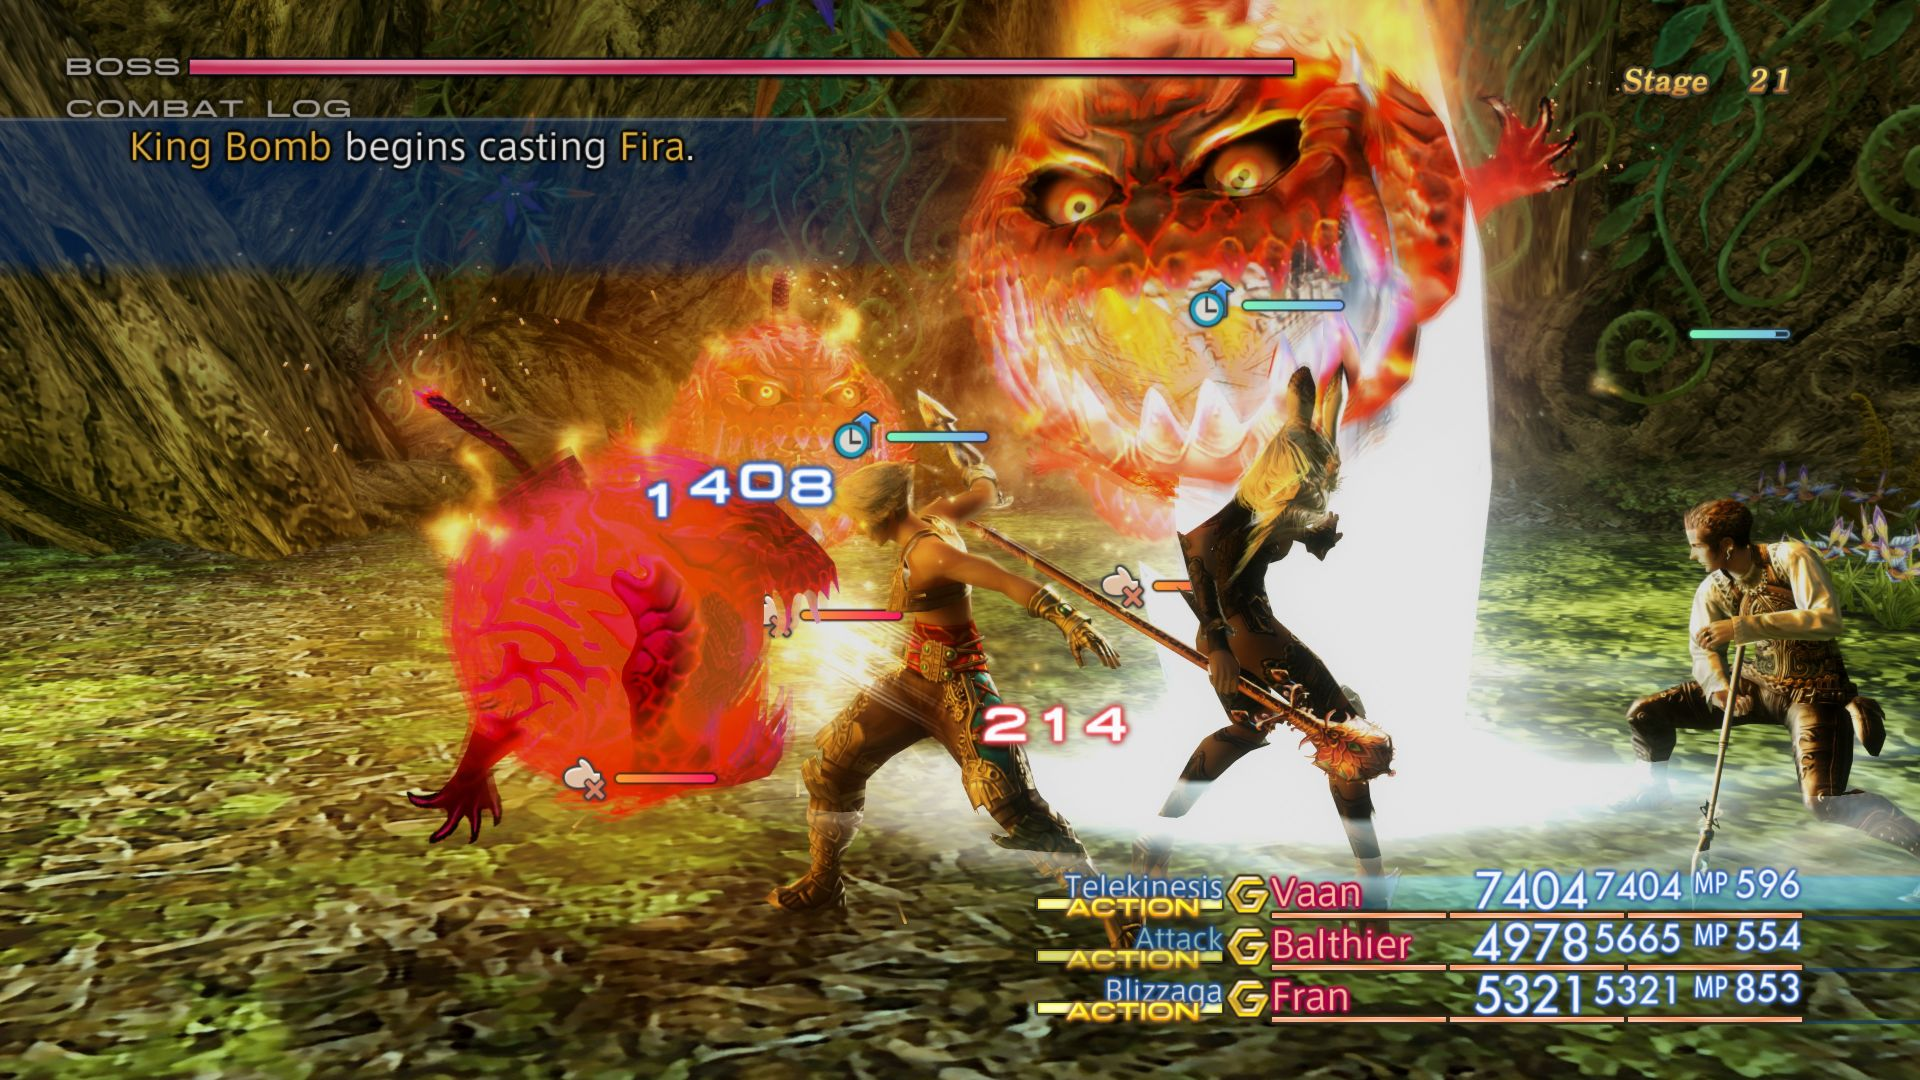 Final Fantasy Xii The Zodiac Age Pc Review Ivalice At Its Finest